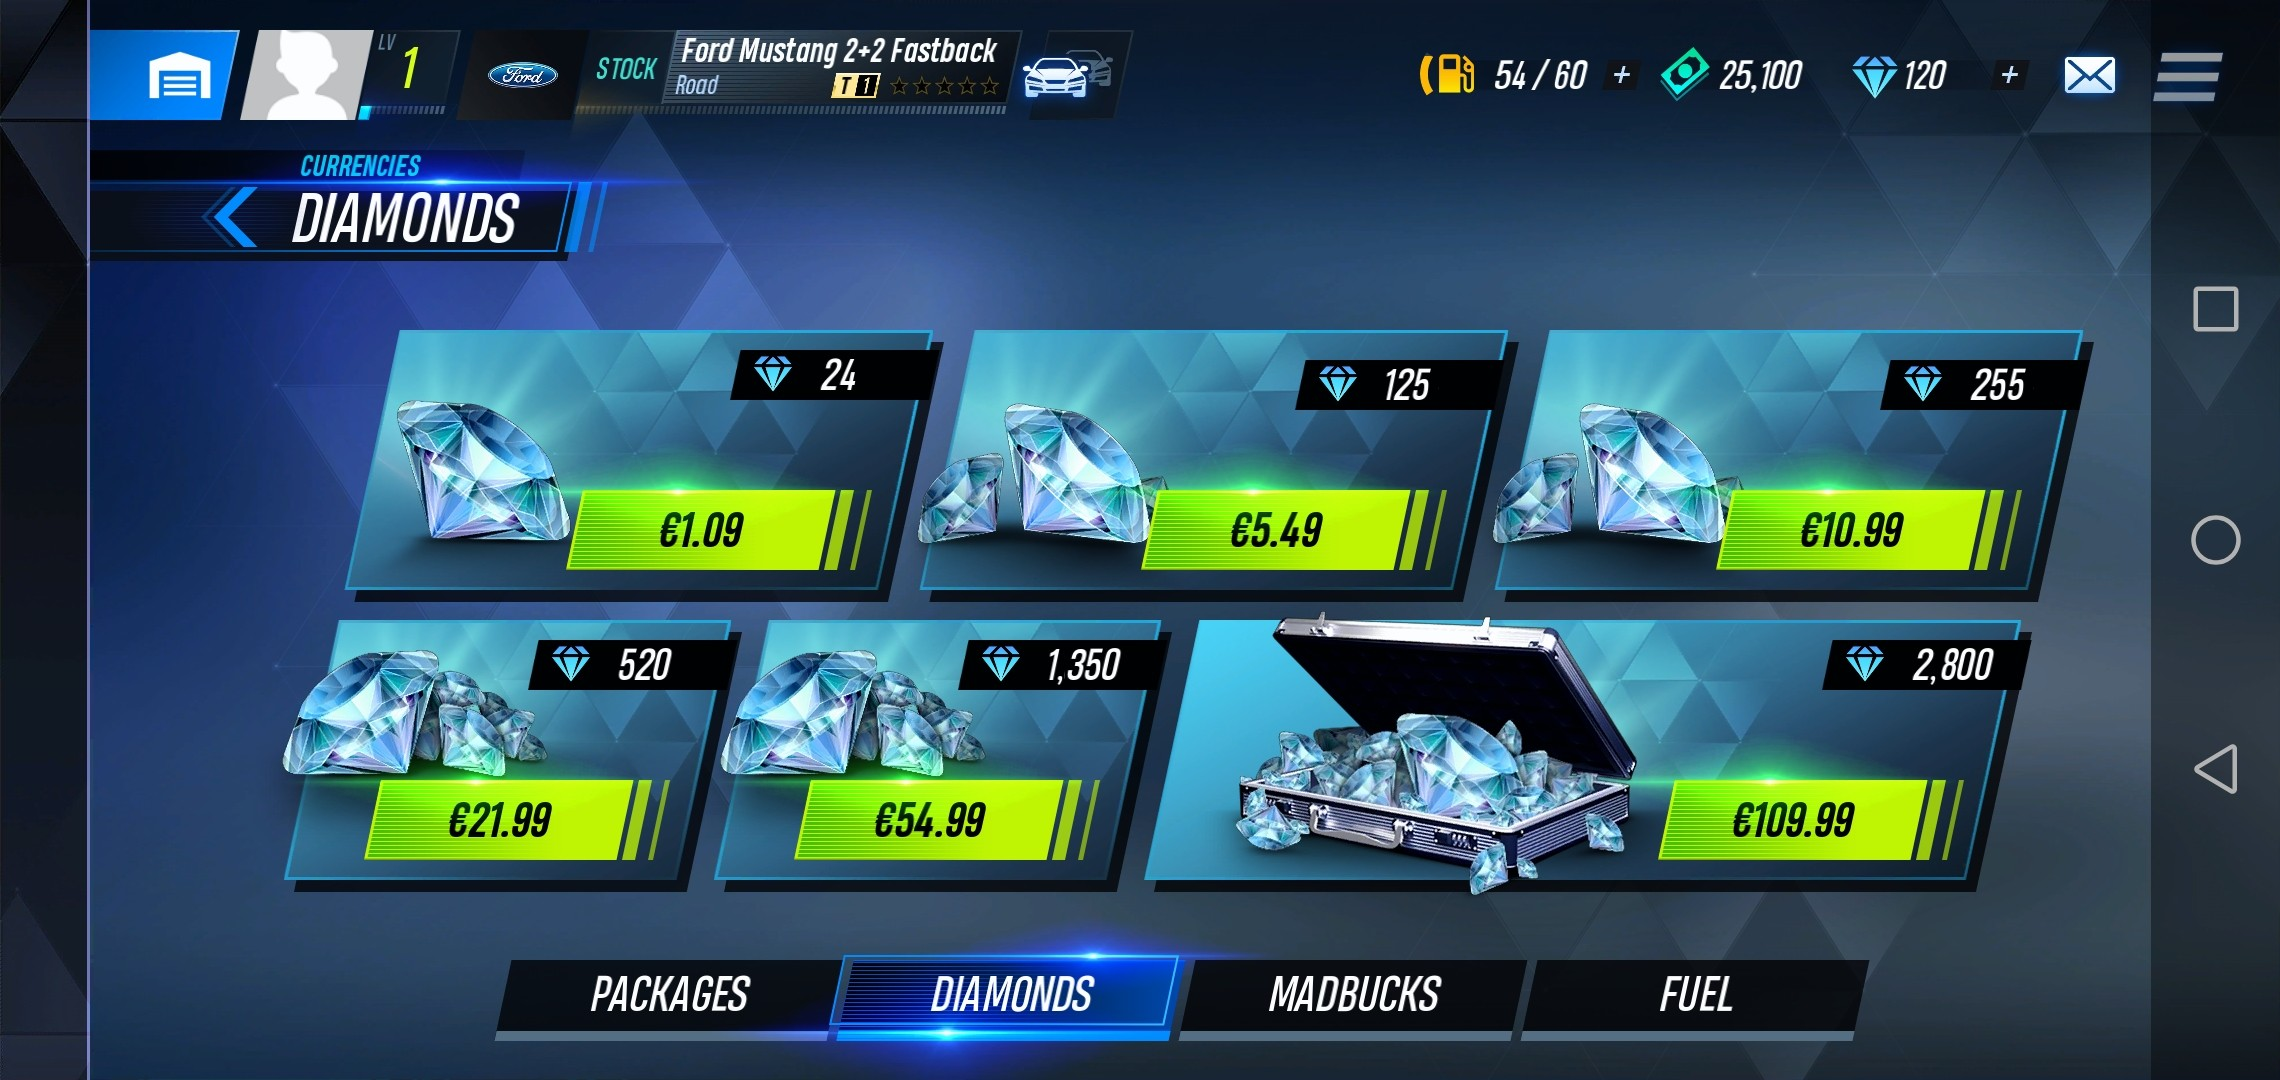 The image shows Diamonds, an in-game currency, which can be bought for actual money.